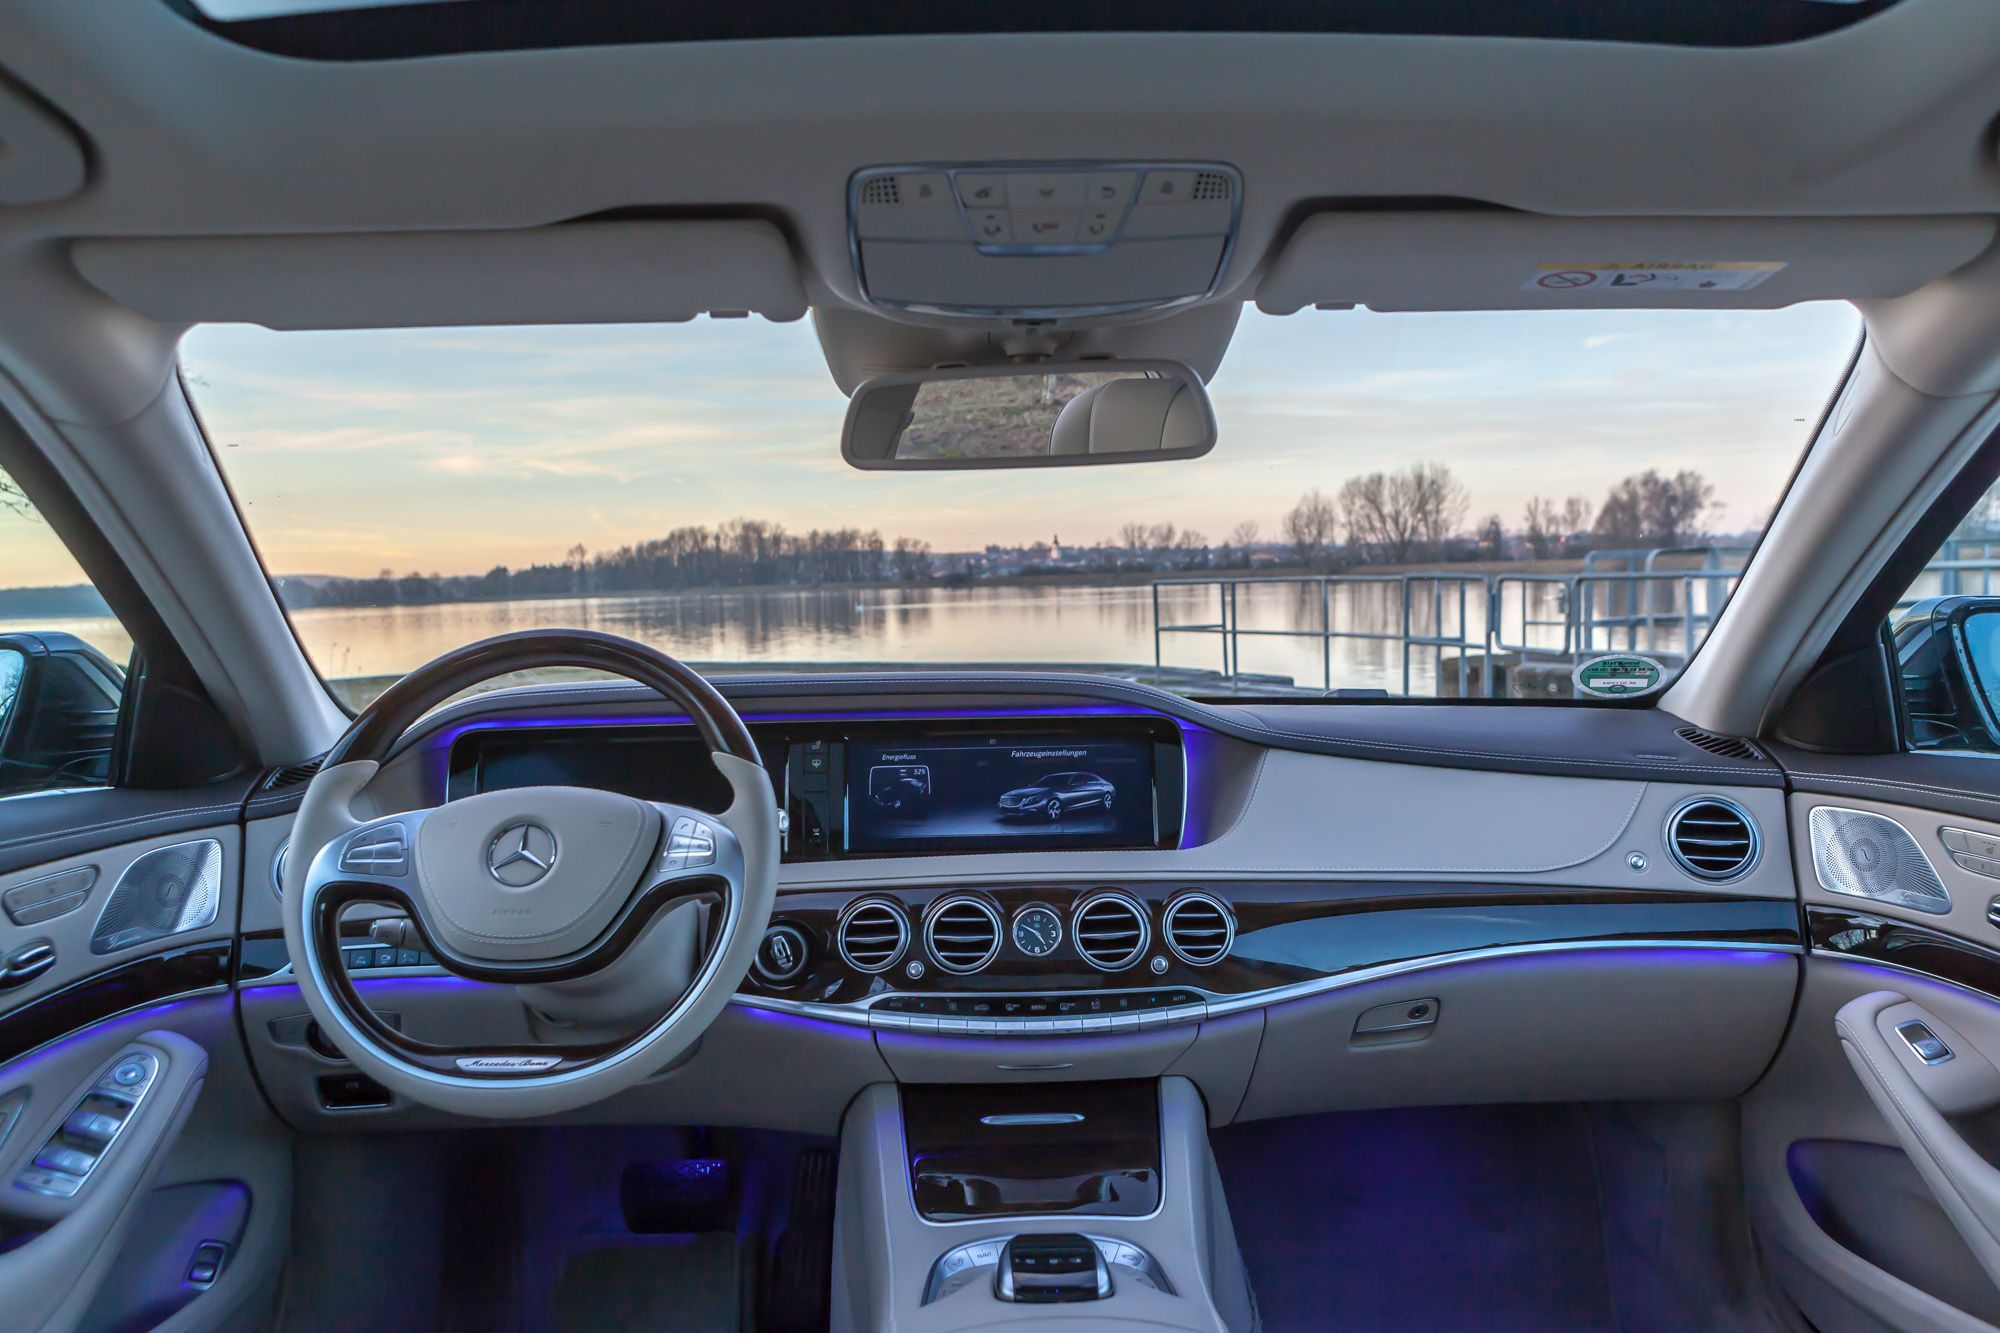 Travel Tip of the Week: Mercedes Benz Hotel Partnership